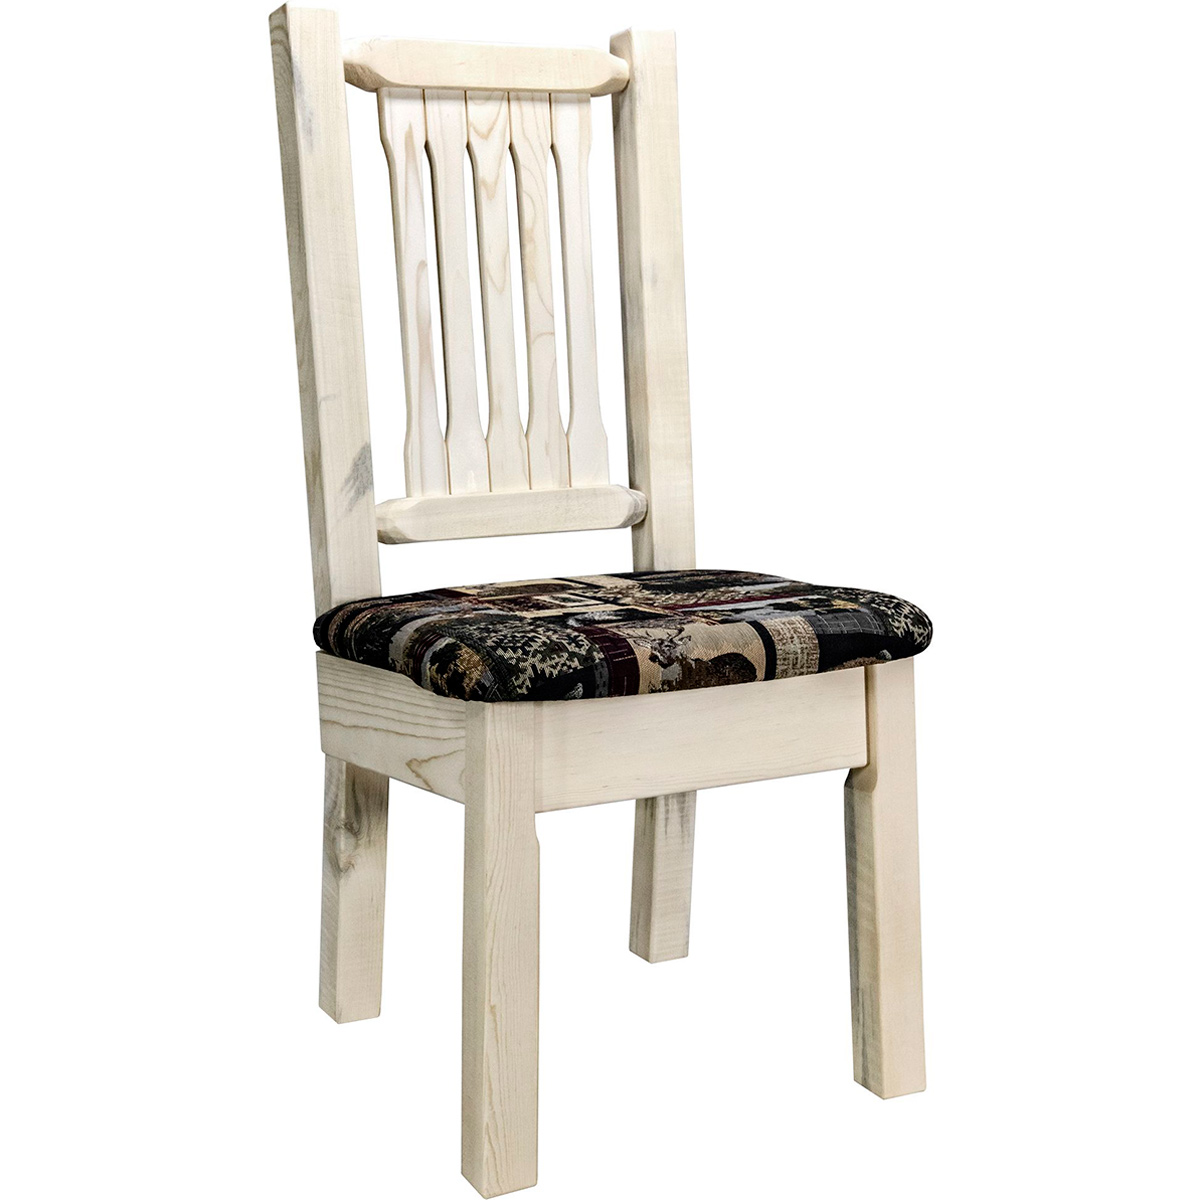 Ranchman's Side Chair with Woodland Upholstered Seat & Clear Lacquer Finish